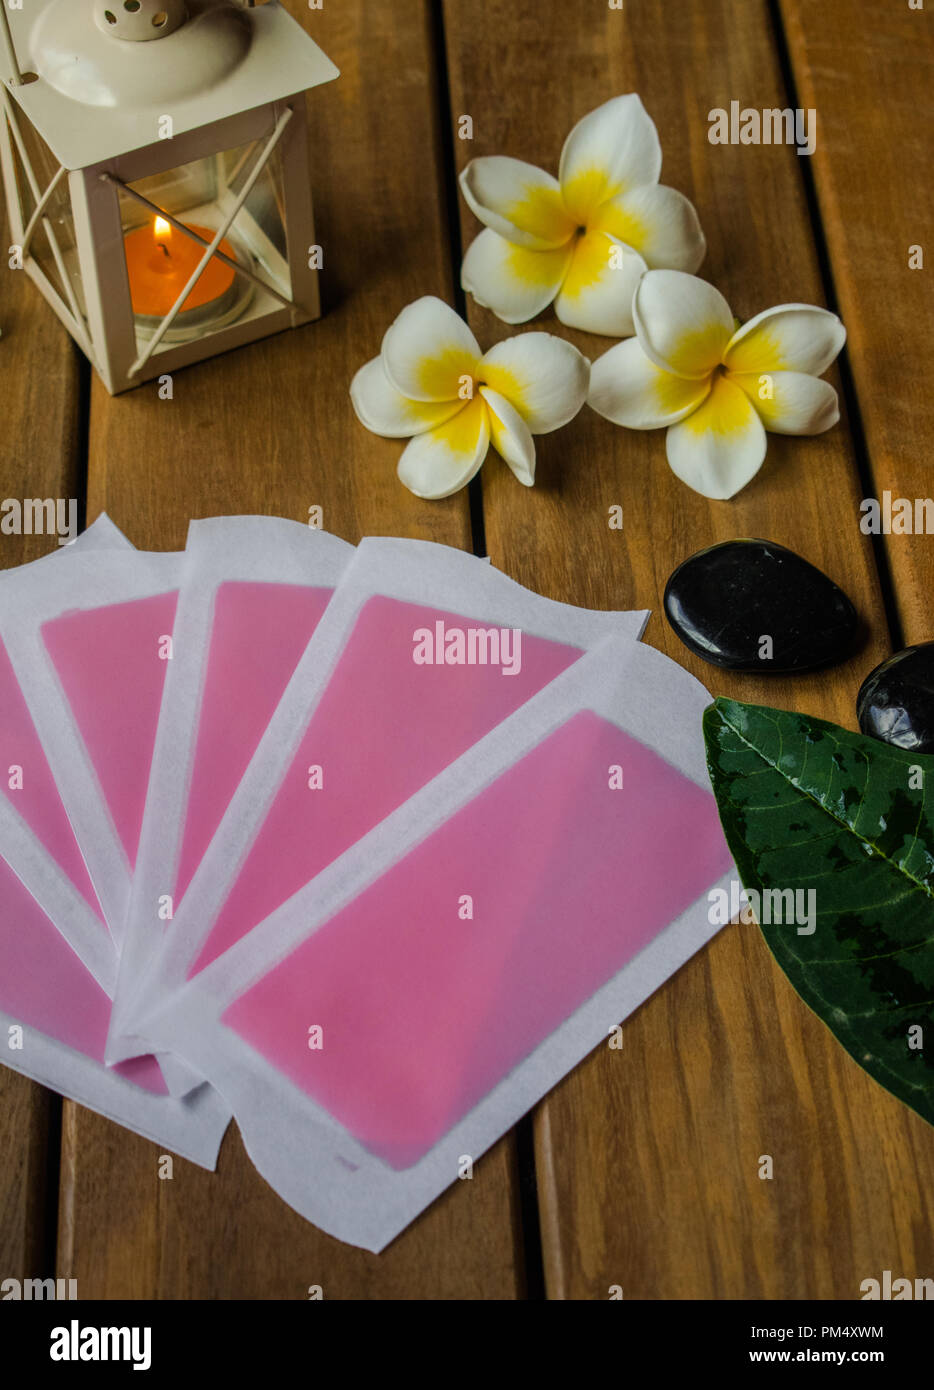 Pink cold waz strips on wooden surface with plumeria flowers, black round stones and orange candle - Stock Image